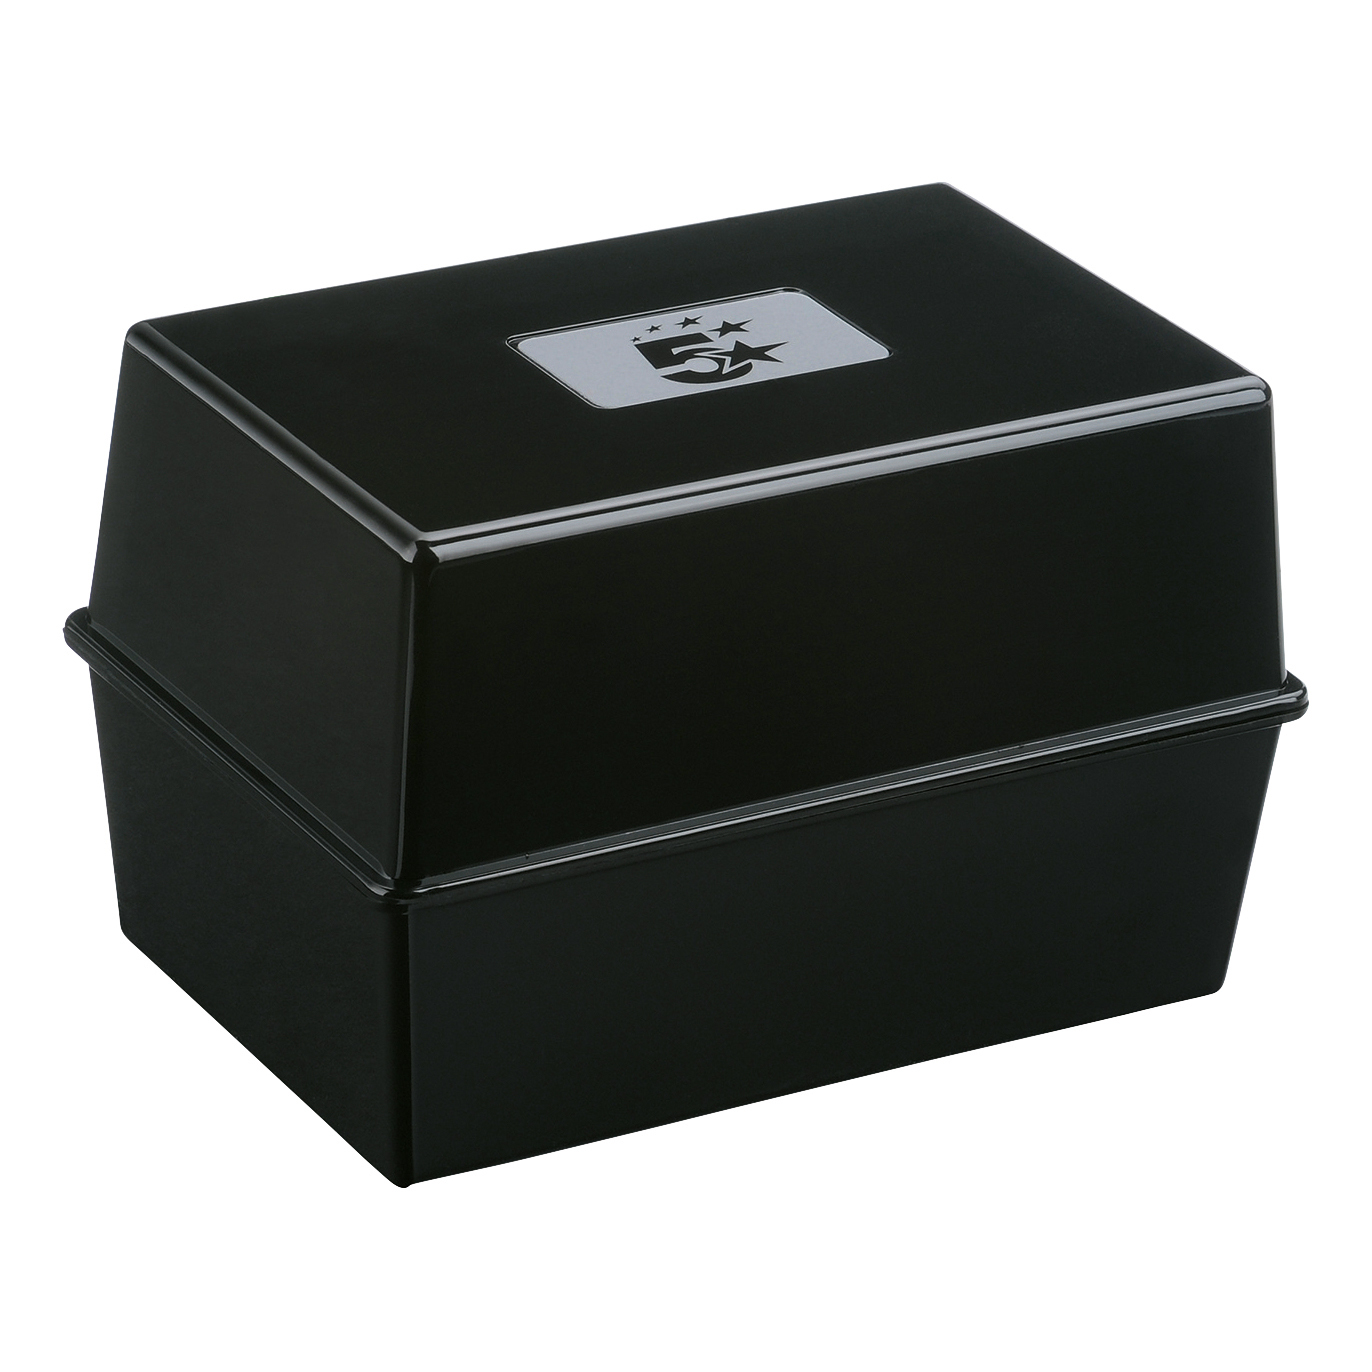 Storage 5 Star Office Card Index Box Capacity 250 Cards 6x4in 152x102mm Black